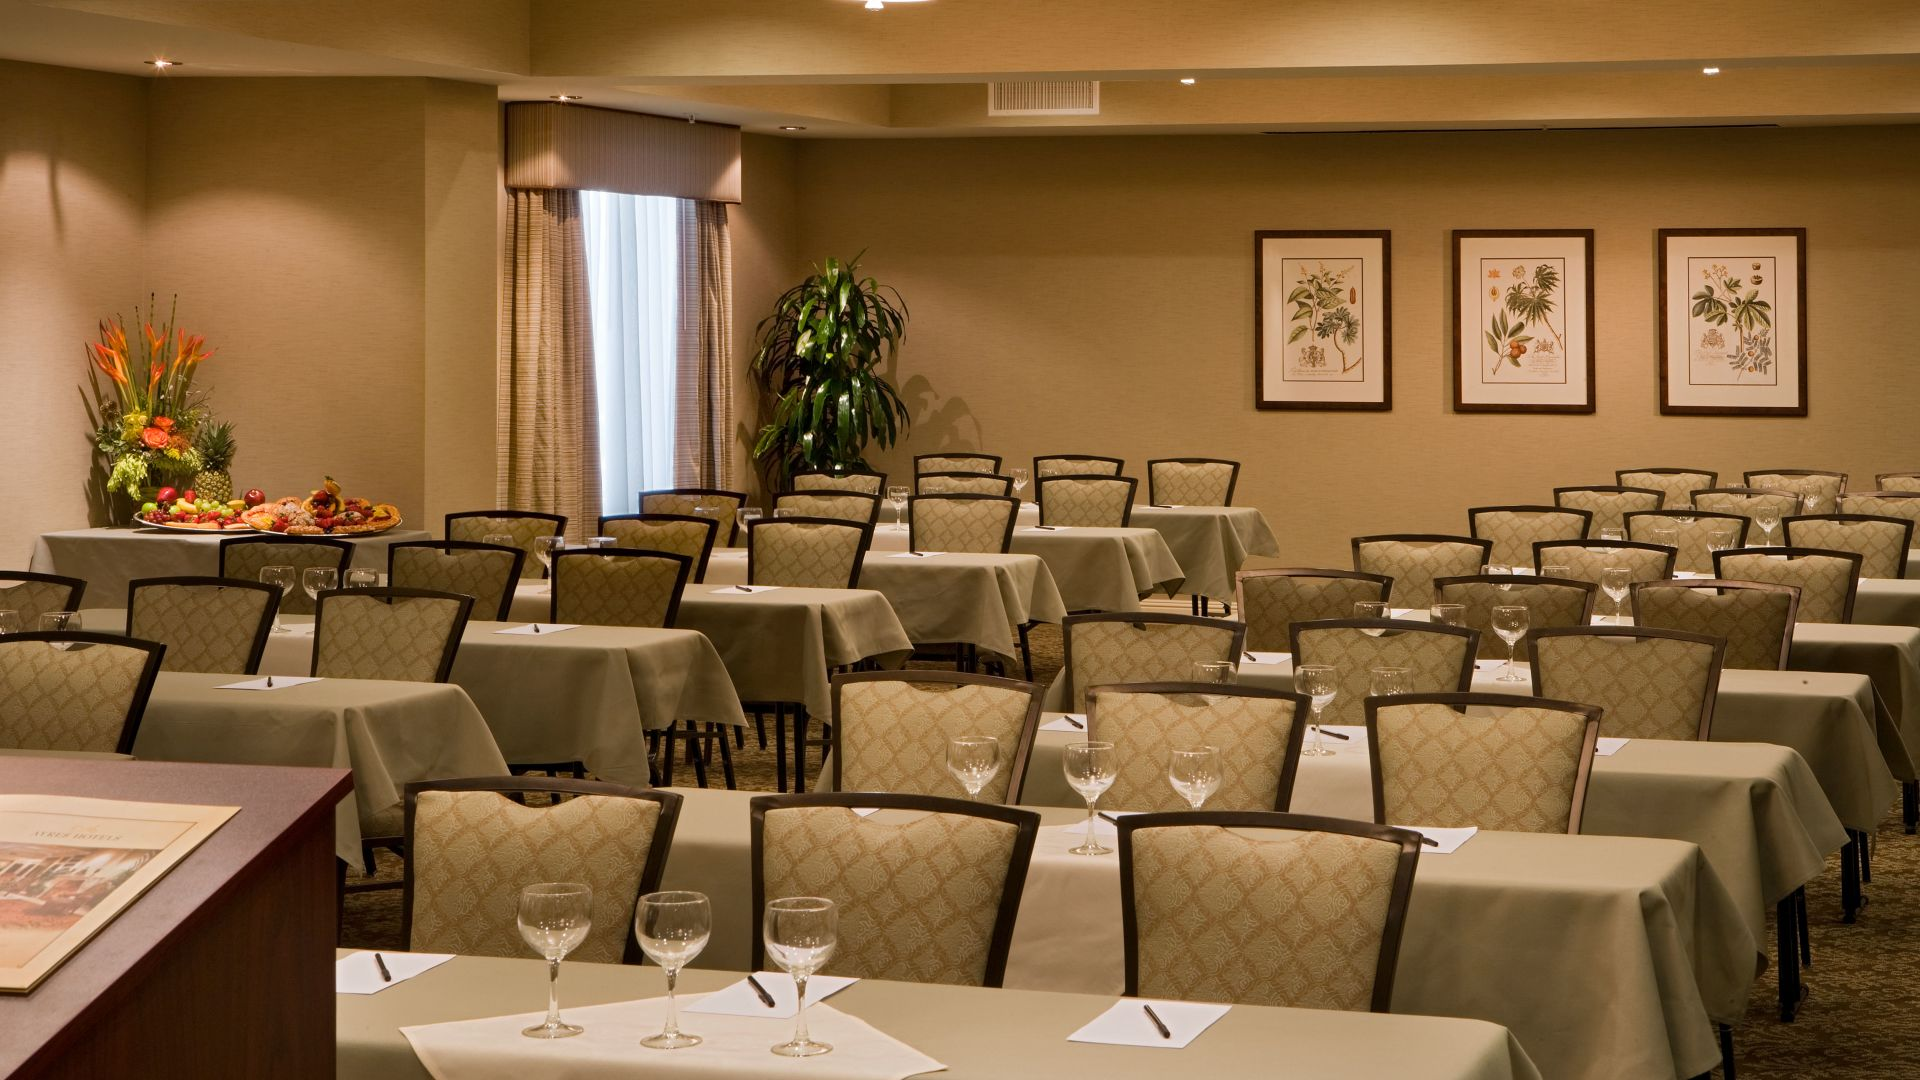 Ayres Hotel & Spa Mission Viejo Meeting ROom Classroom